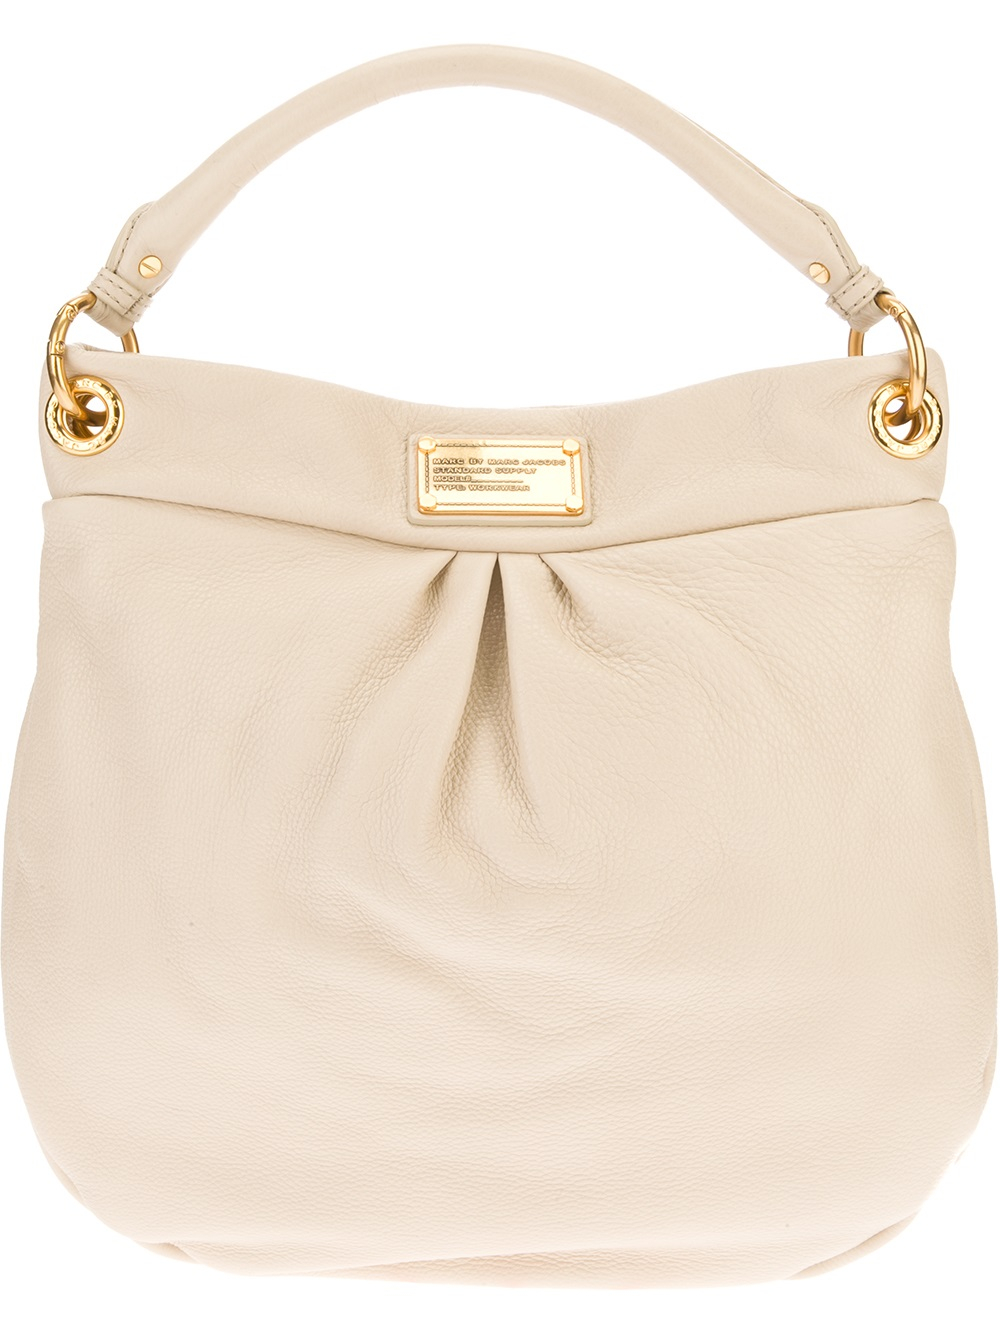 667220ad16c6 Lyst - Marc By Marc Jacobs Hillier Hobo Tote Bag in Natural